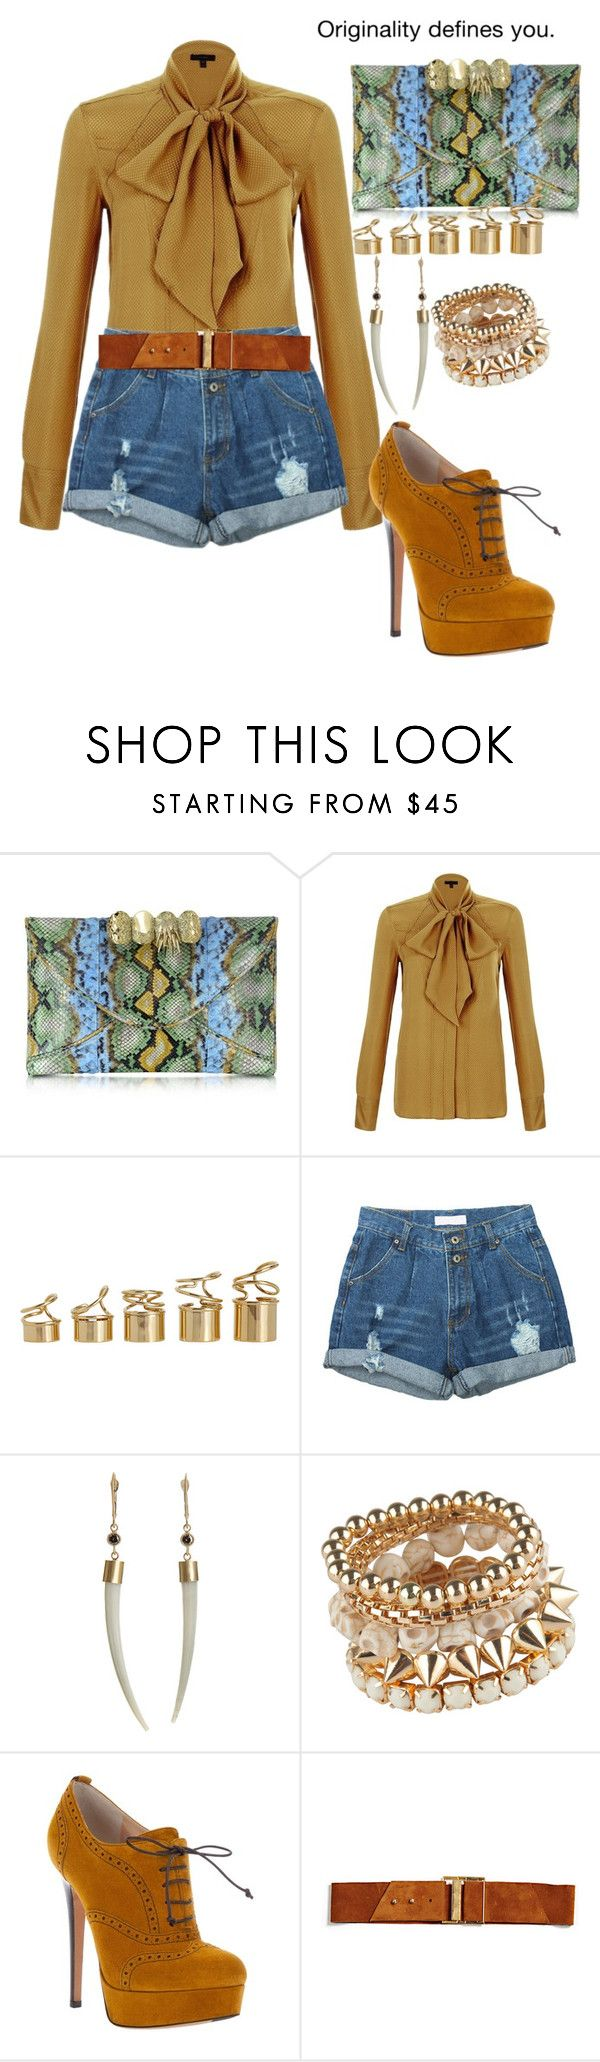 """Daytime look"" by highfashionfiles ❤ liked on Polyvore featuring Maison Du Posh, Belstaff, Balenciaga, Monique Péan, Ballin, Elegantly Waisted and chiffon bow blouse distressed high waisted denim shorts oxford pumps snakeskin clutch"